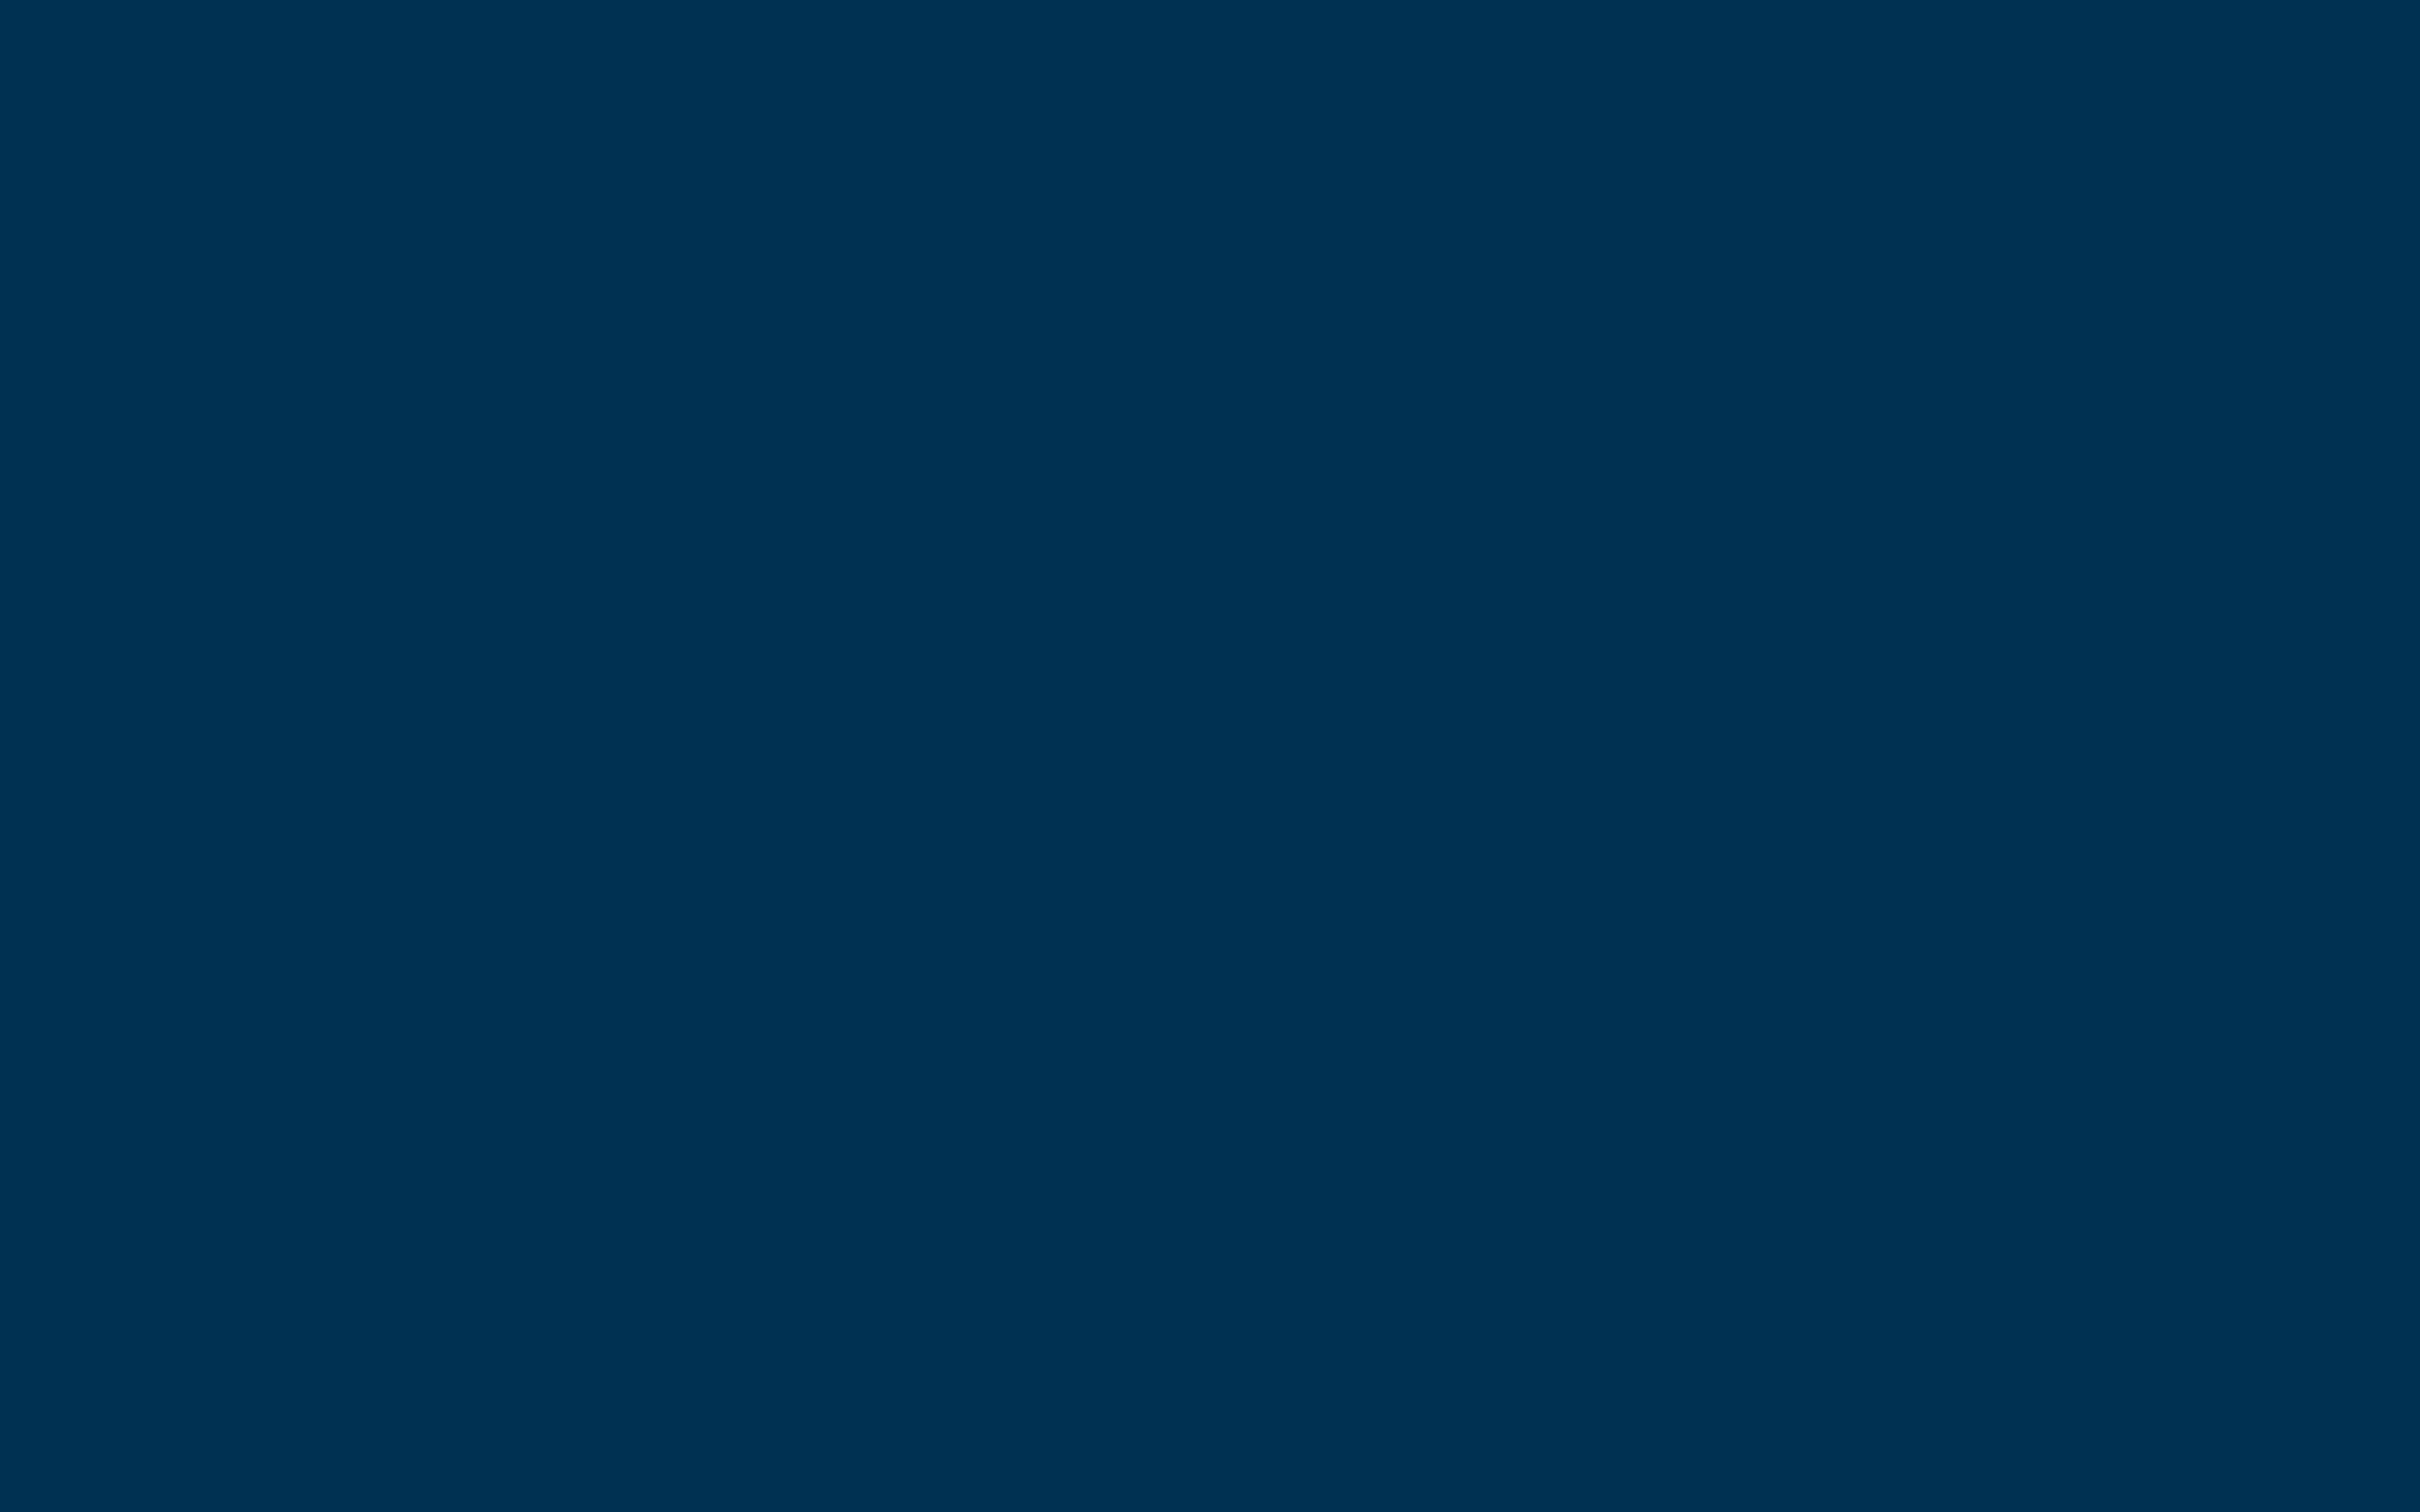 2880x1800 prussian blue solid color background